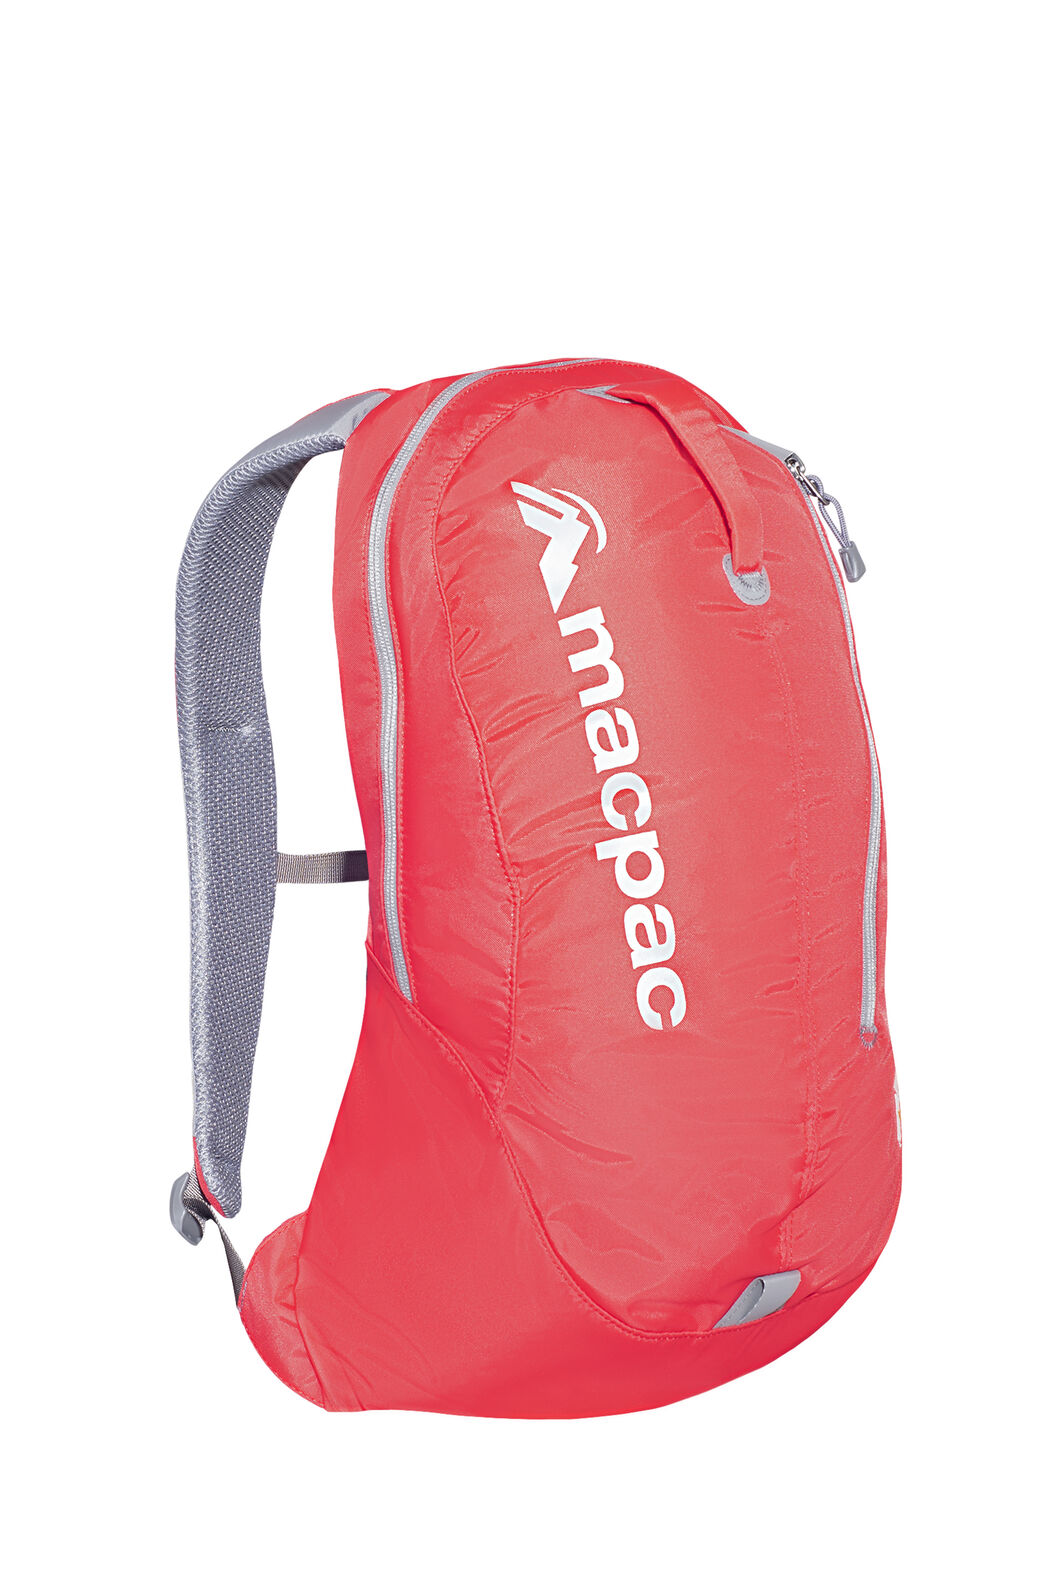 Macpac Kahuna 1.1 18L Backpack, Lollipop, hi-res